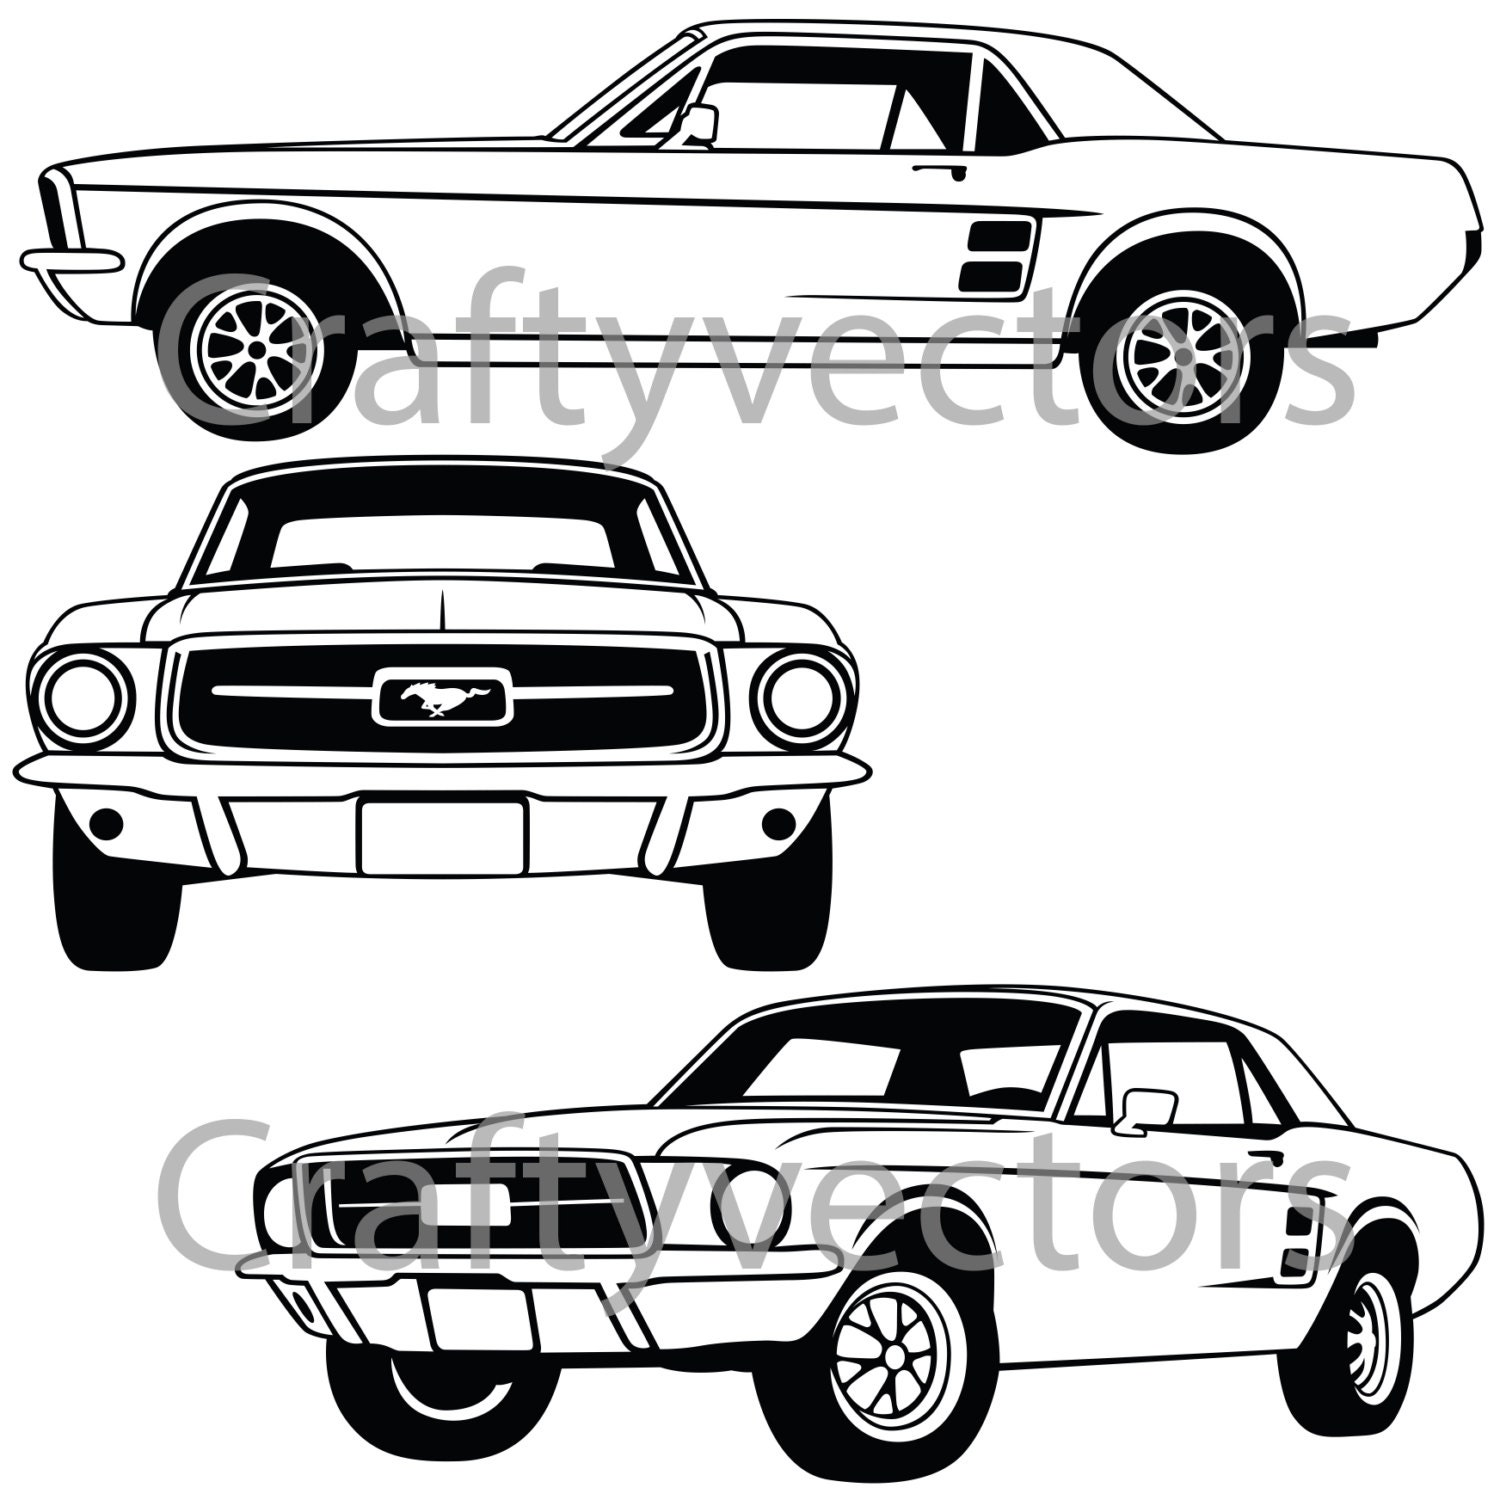 ford mustang 67 coupe vector file from craftyvectors on